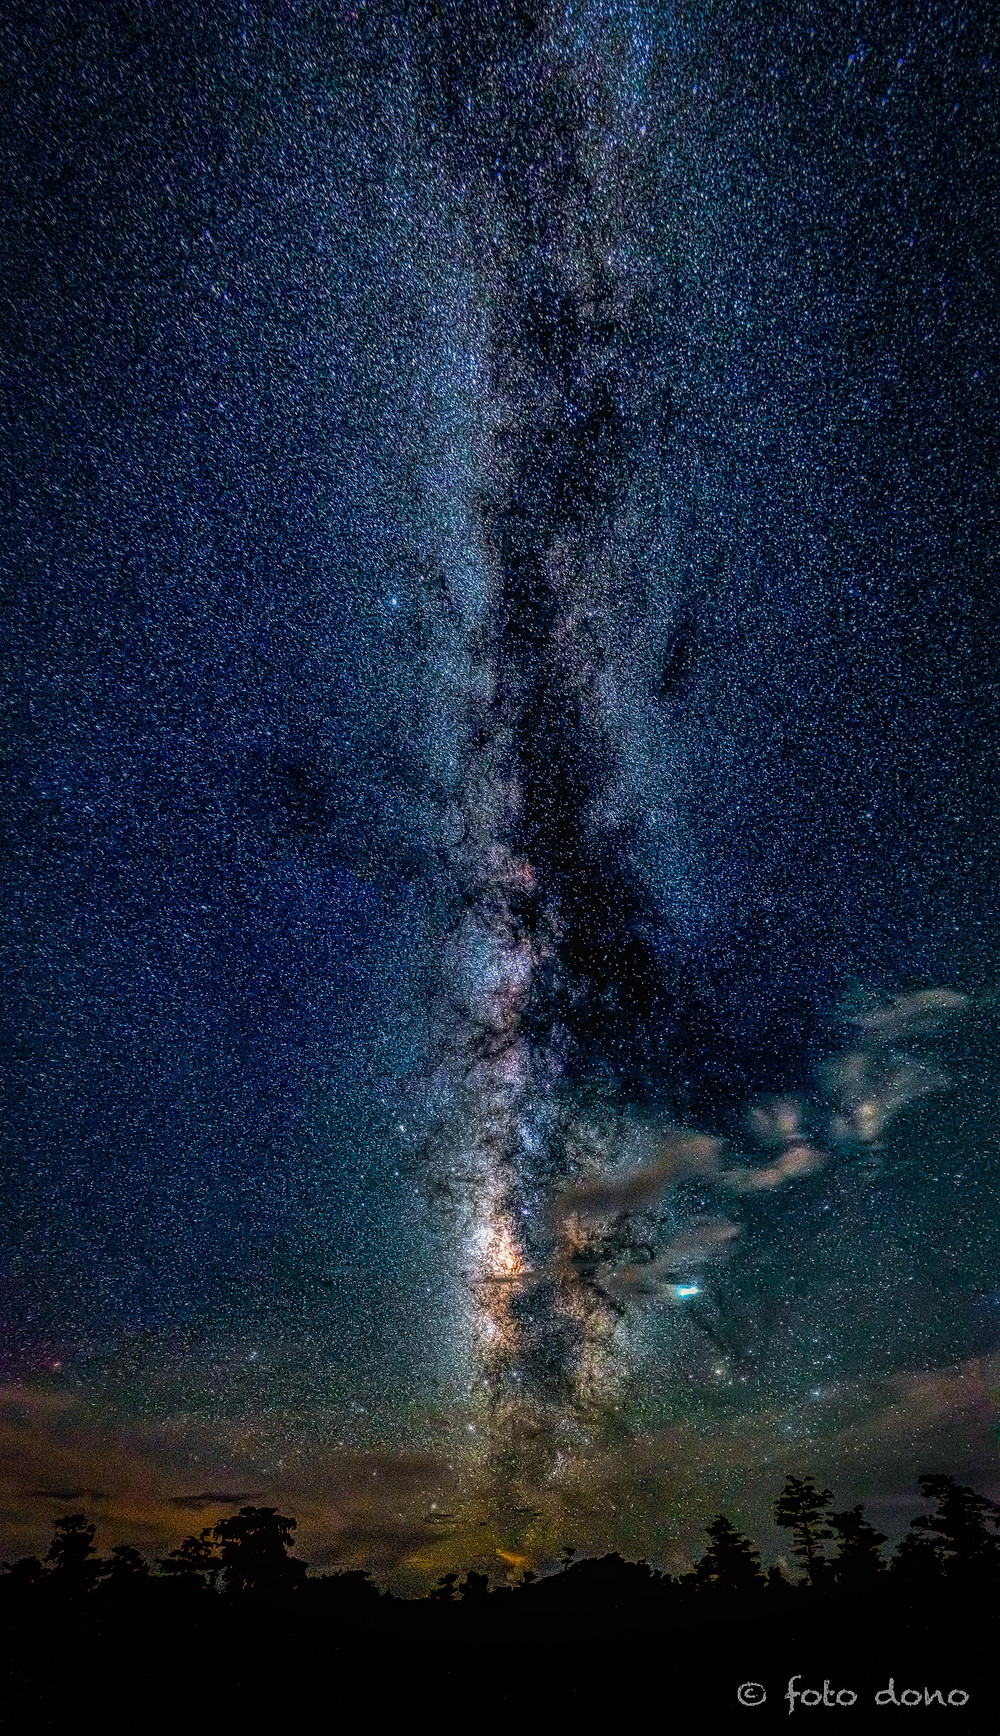 The Milky Way in the Big Cypress Swamp